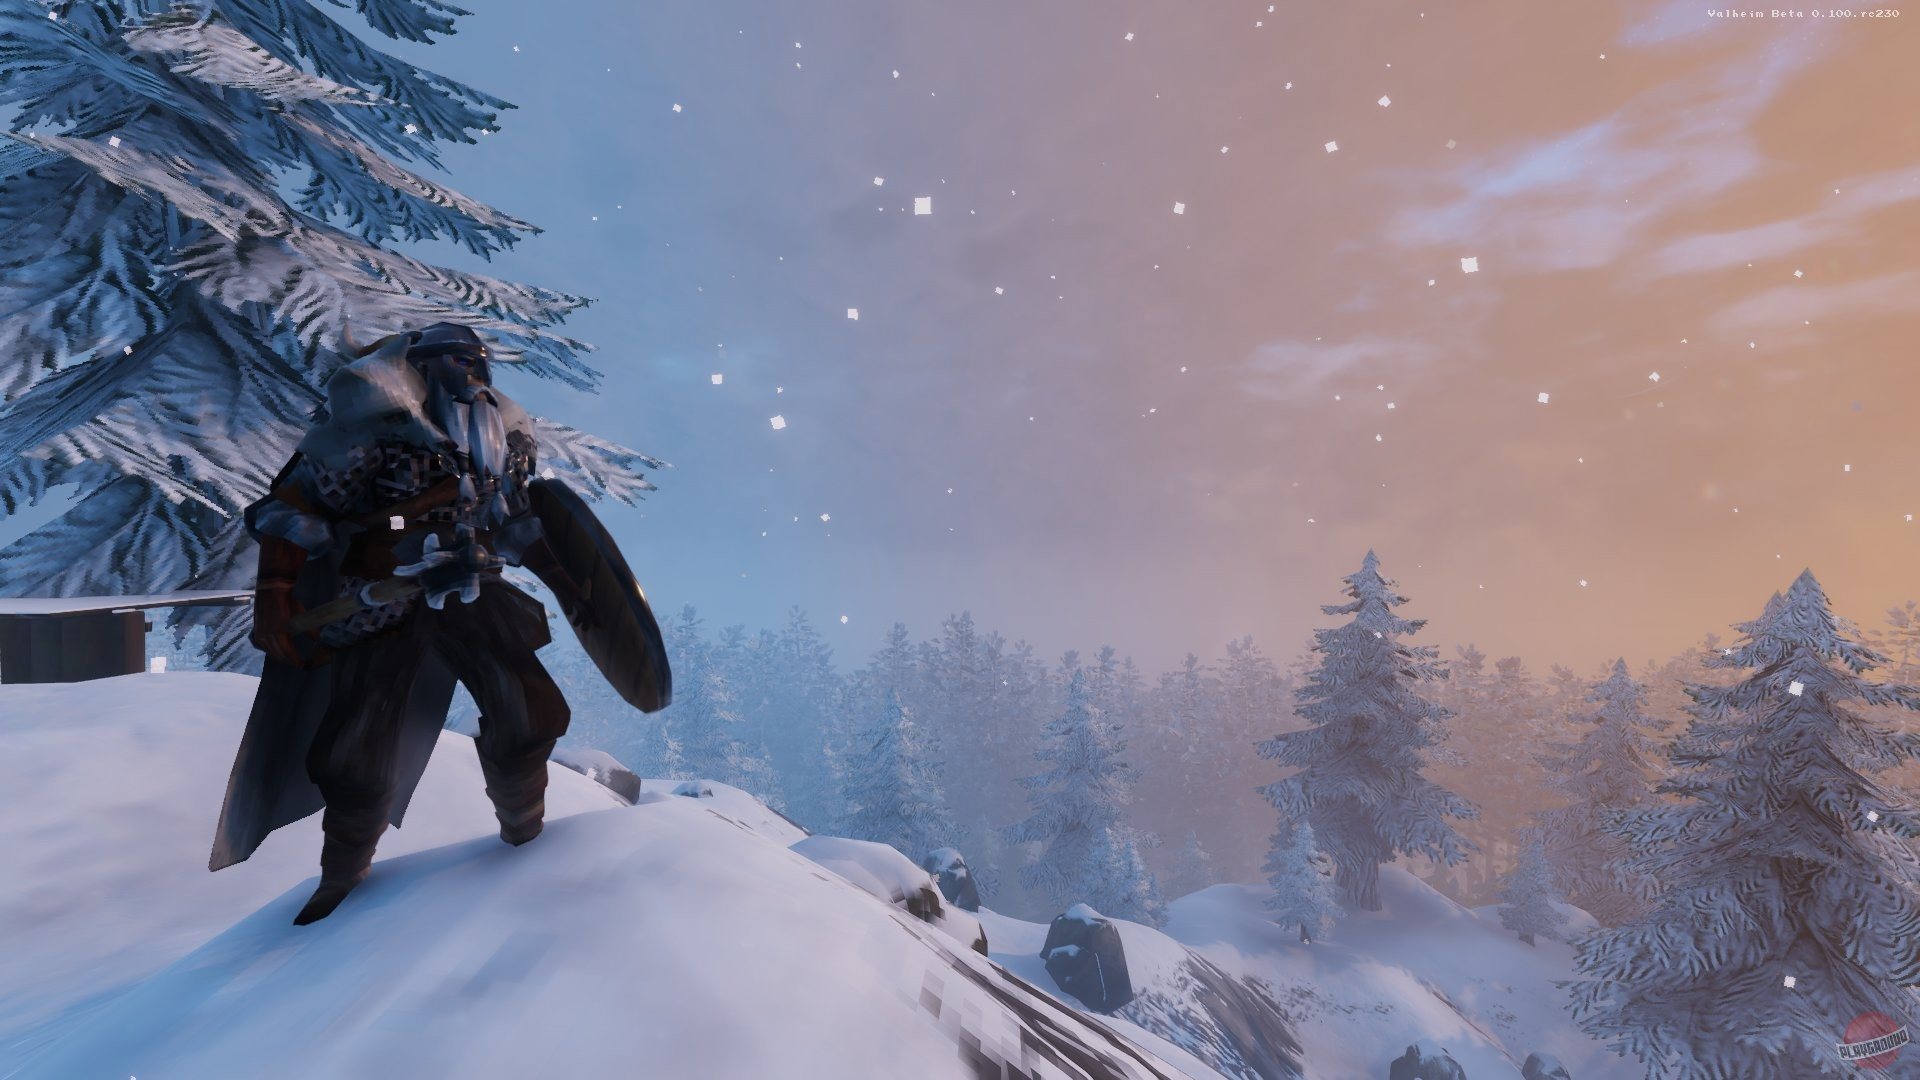 Screenshot for the game Valheim [0.145.6 Early Access] (2021) download torrent RePack from xatab